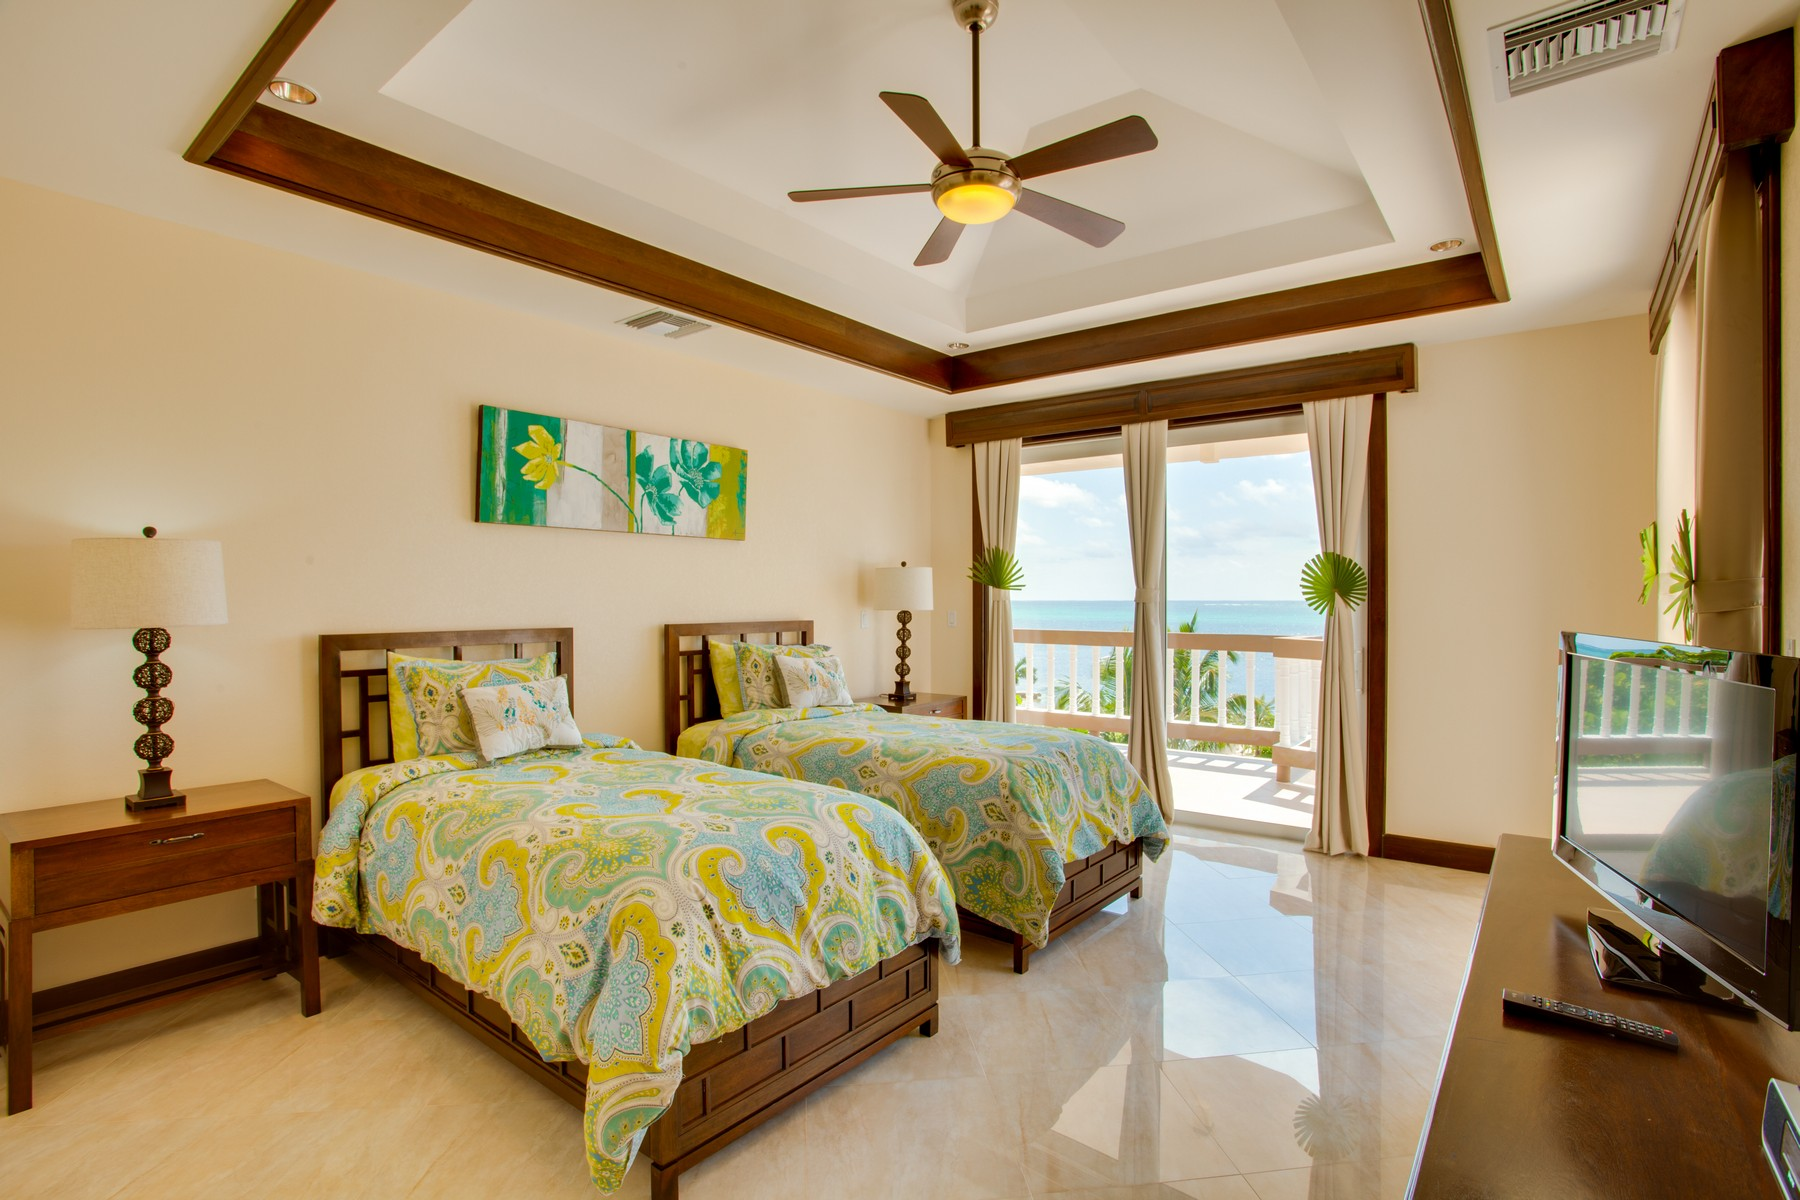 Additional photo for property listing at Villa Caribe San Pedro Town, Ambergris Caye Belize